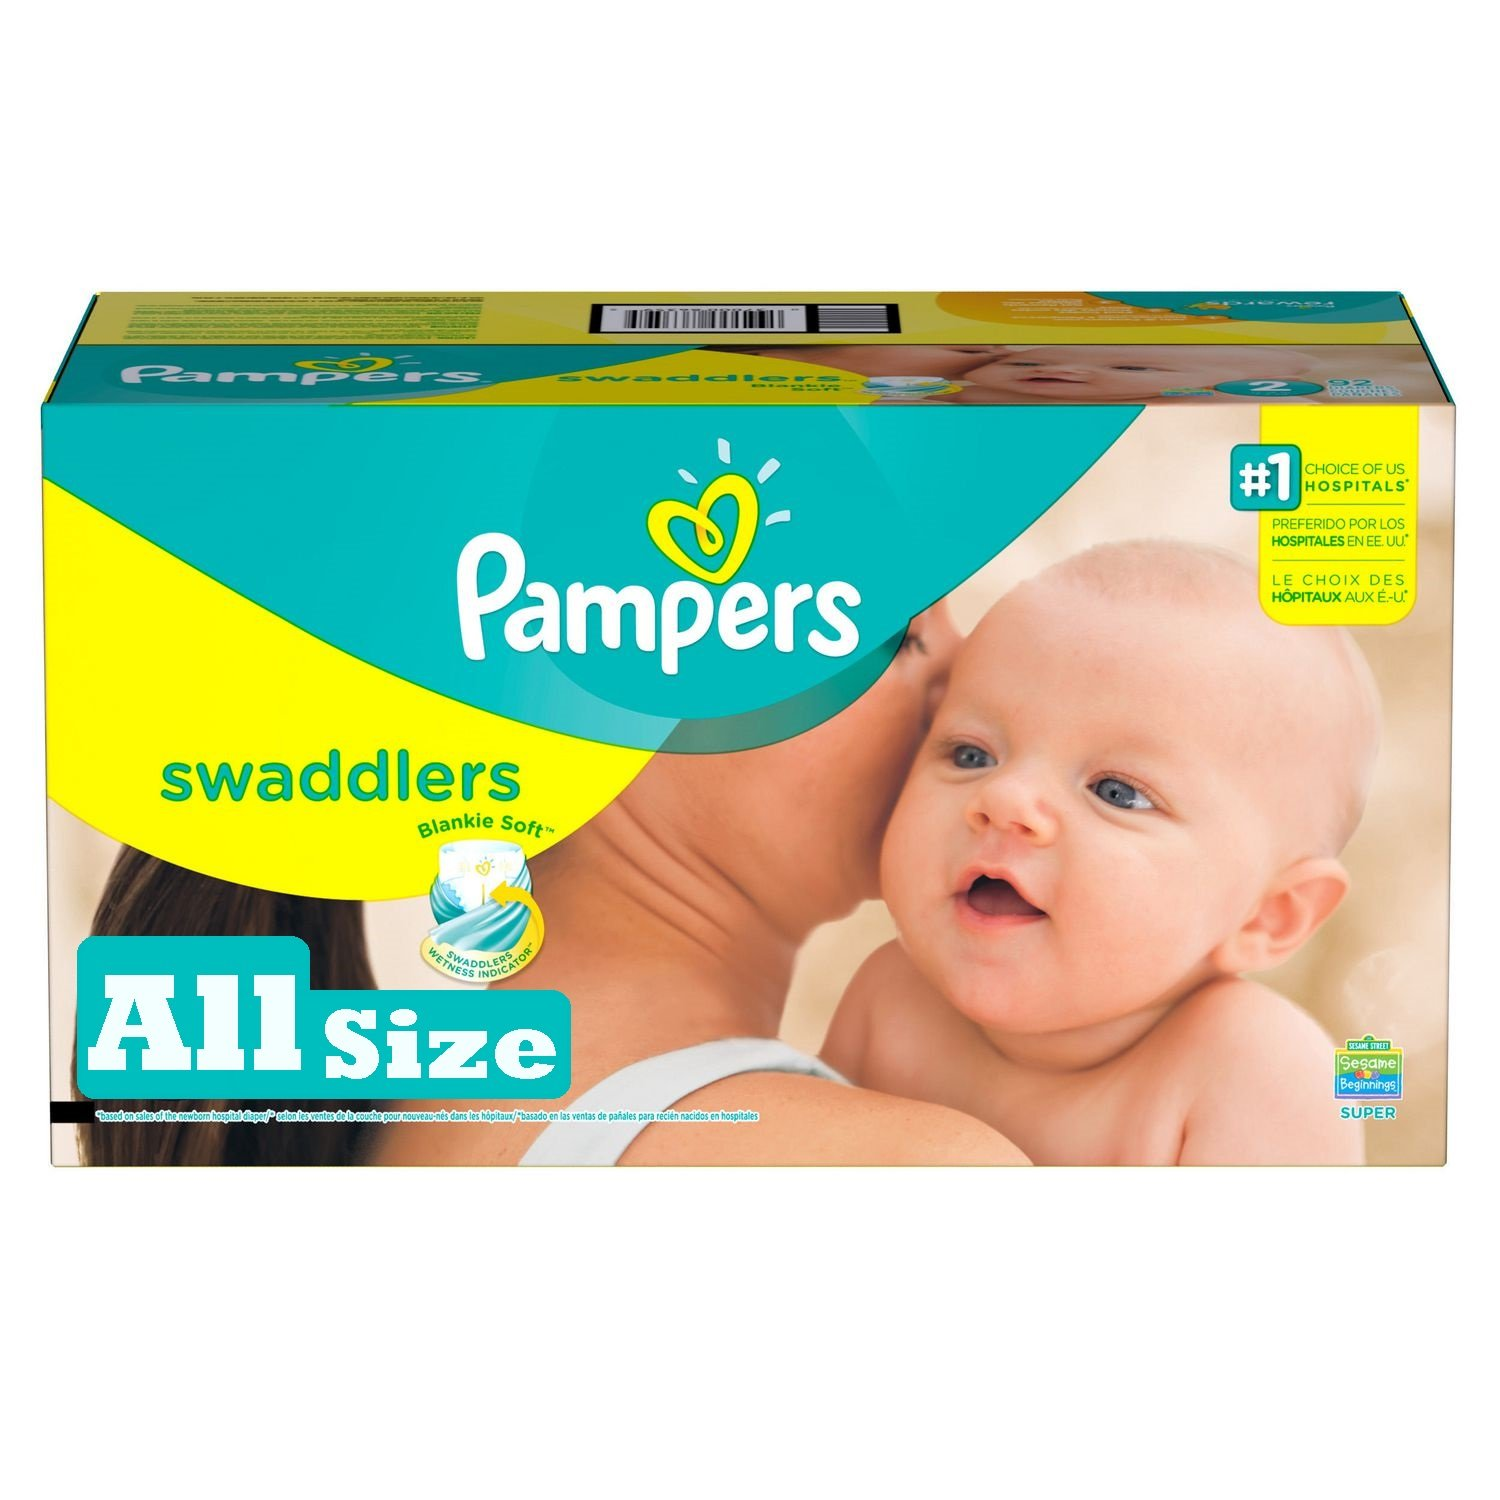 Buy Pampers Swaddlers Sensitive Disposable Diapers Newborn Size 1 ( lb), Count, SUPER ECONOMY on wheelpokemon7nk.cf FREE SHIPPING on qualified orders.